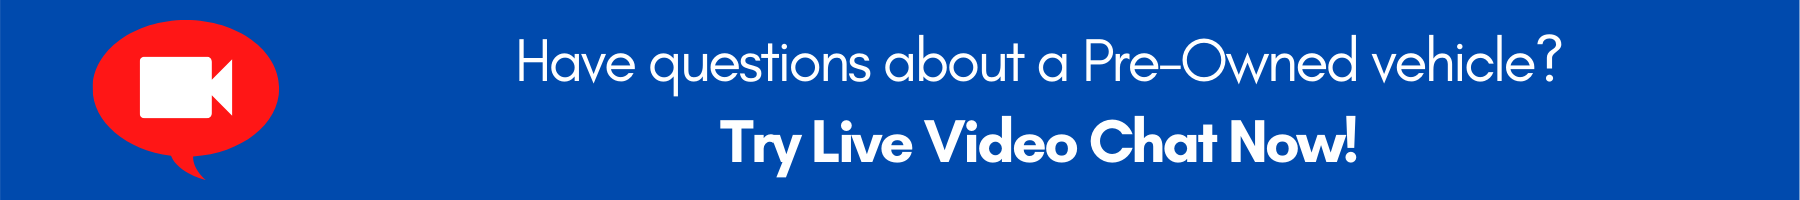 Live Video Chat Banner